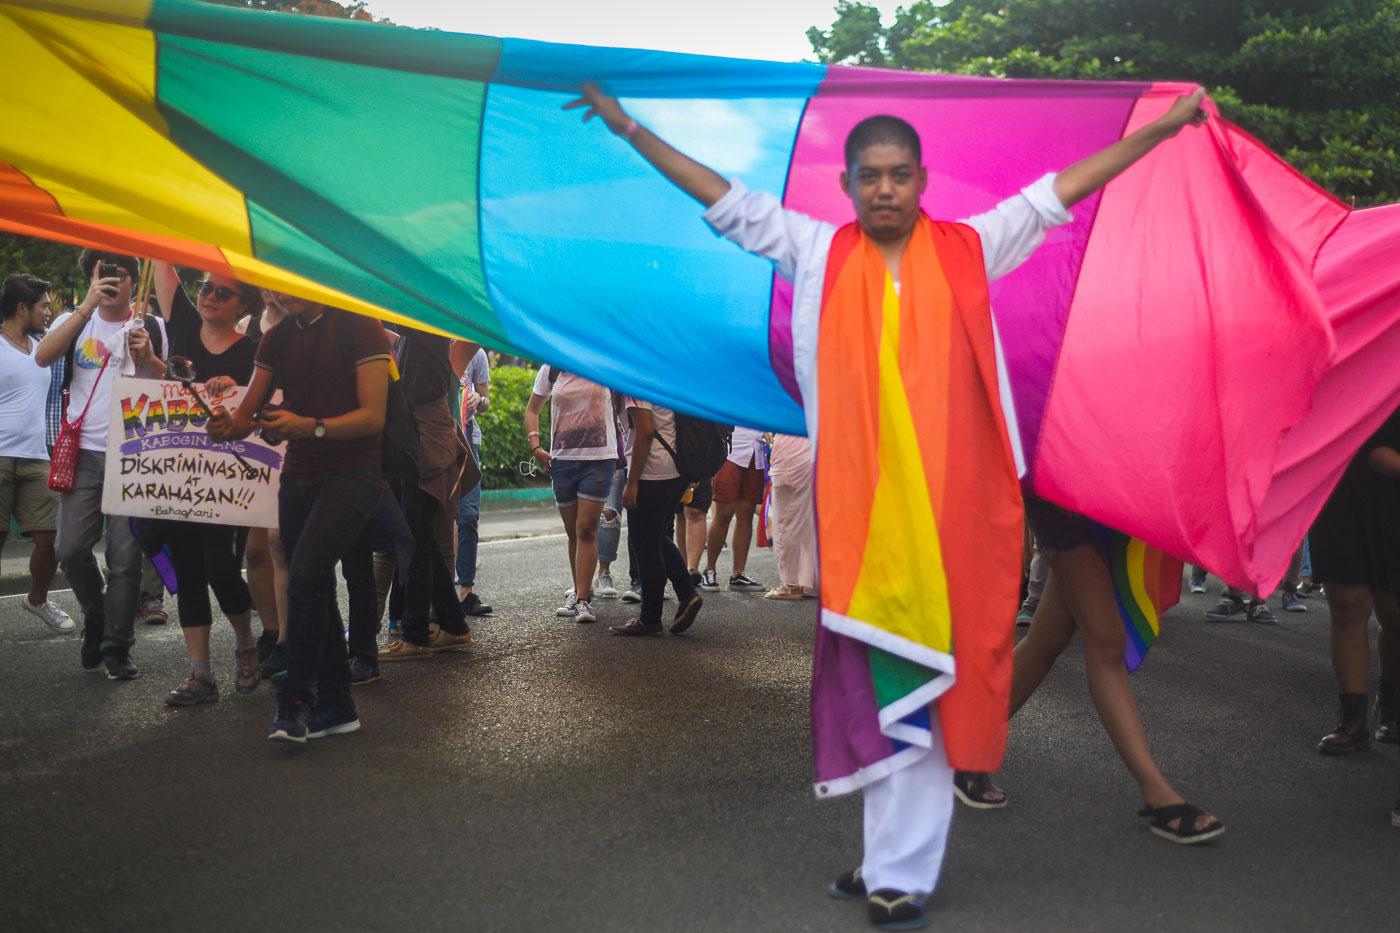 PRIDE MARCH. In this file photo, LGBT groups and individuals gather at the Luneta to celebrate the 22nd Pride March in the Philippines on June 25, 2016.